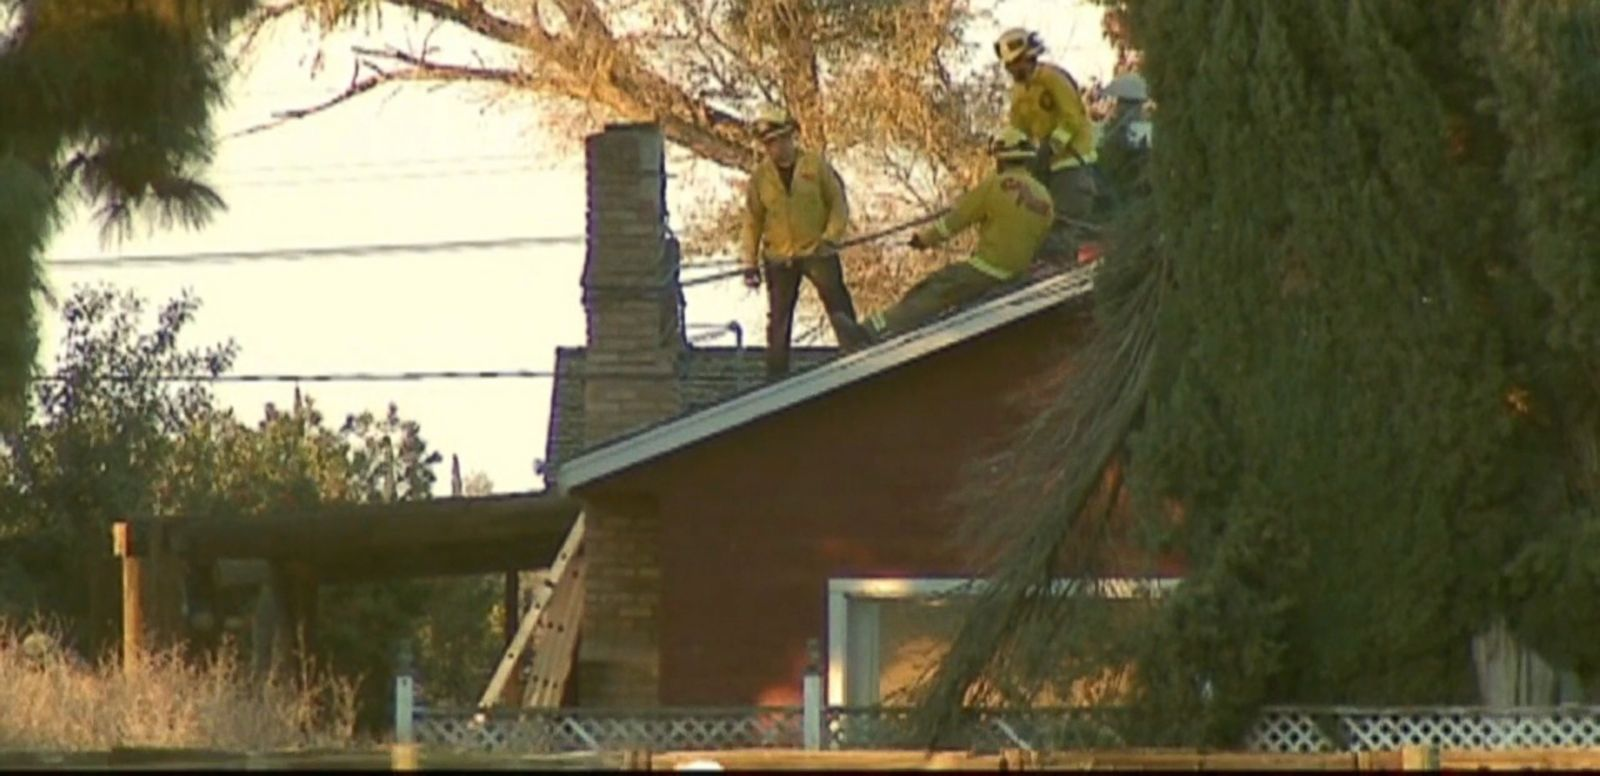 VIDEO: Police say the homeowner unknowingly used his fireplace while Cody Caldwell was stuck in the chimney.